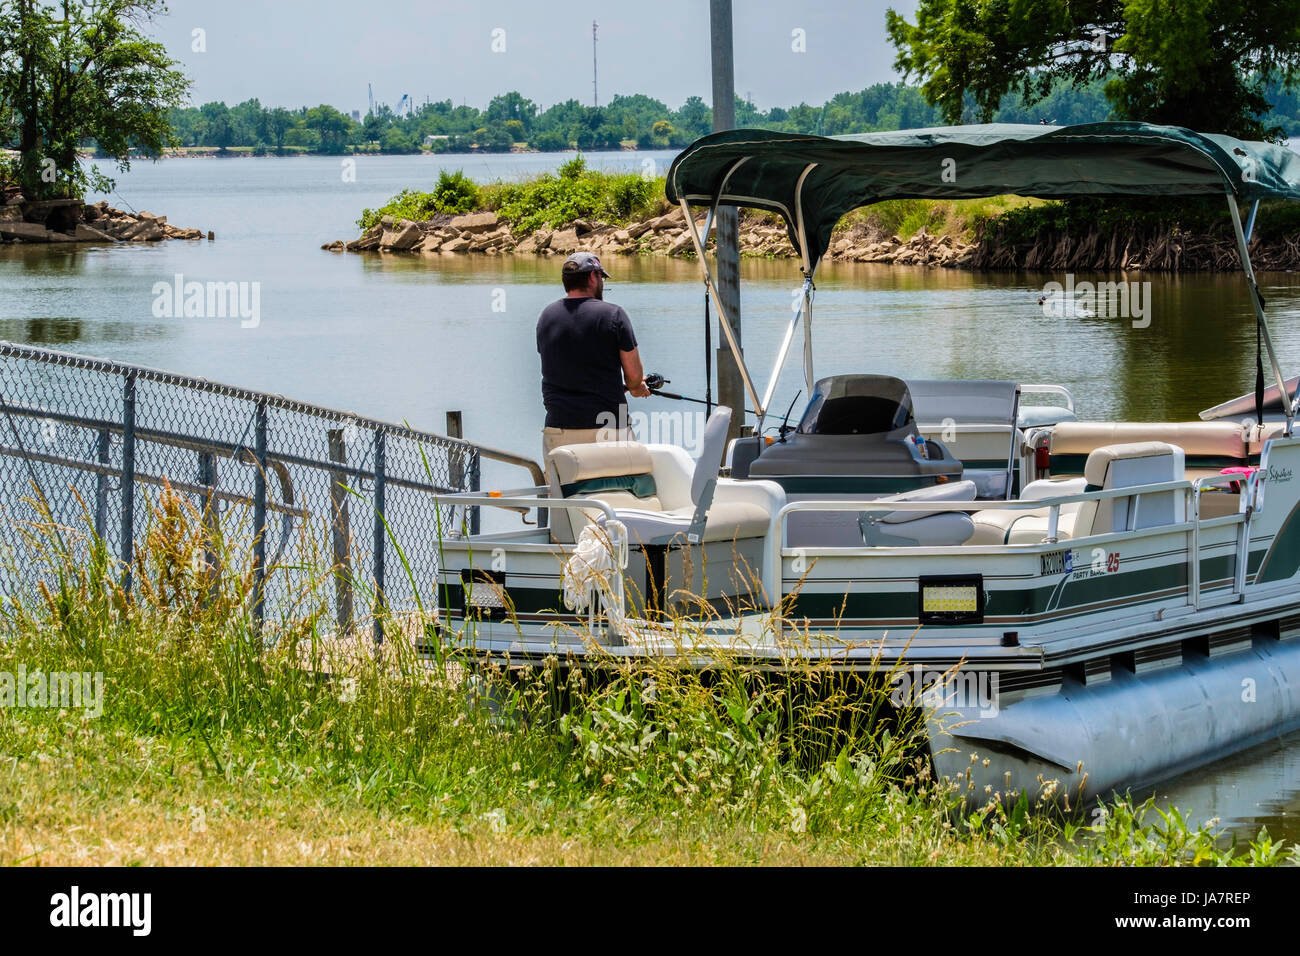 A Caucasian man in his 40s fishes from a pontoon boat on the North Canadian river near Oklahoma City, Oklahoma, - Stock Image